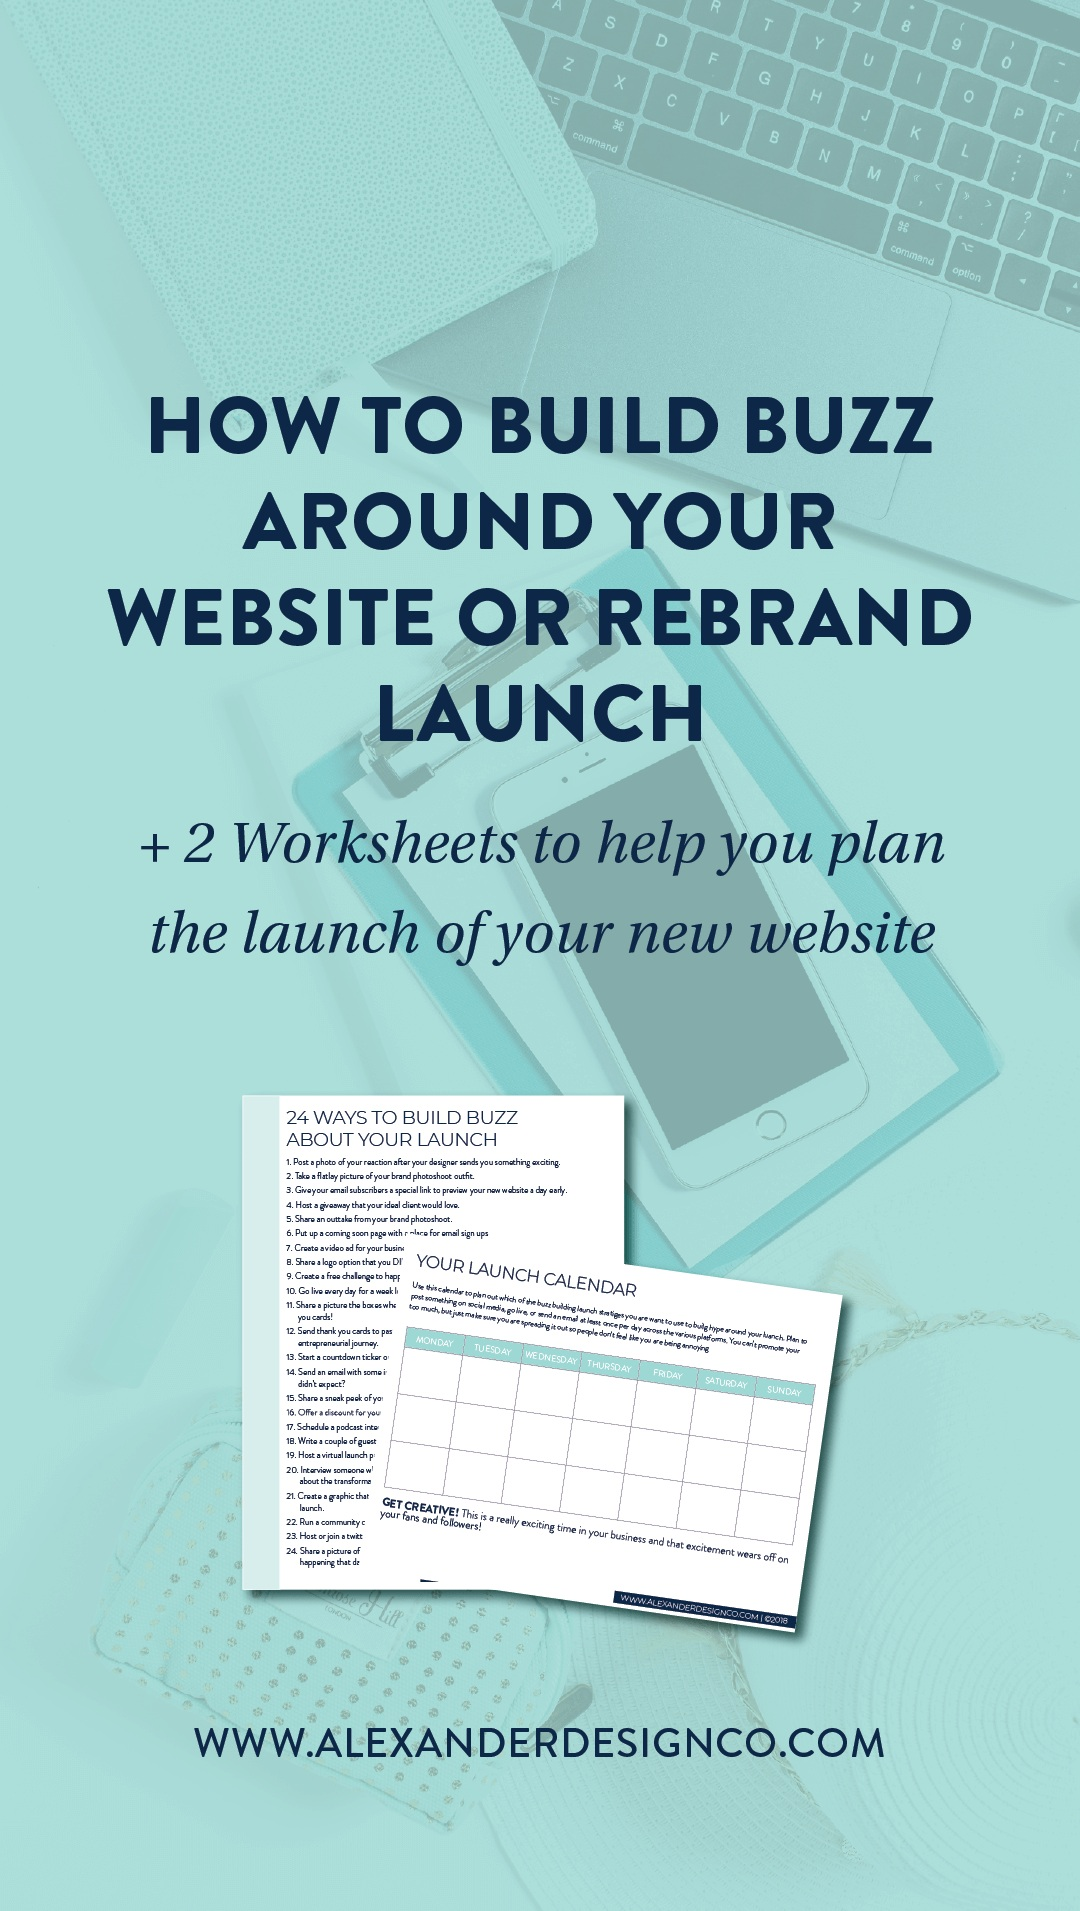 How+to+Build+Buzz+Around+Your+Website+or+Rebrand+Launch-07.jpg